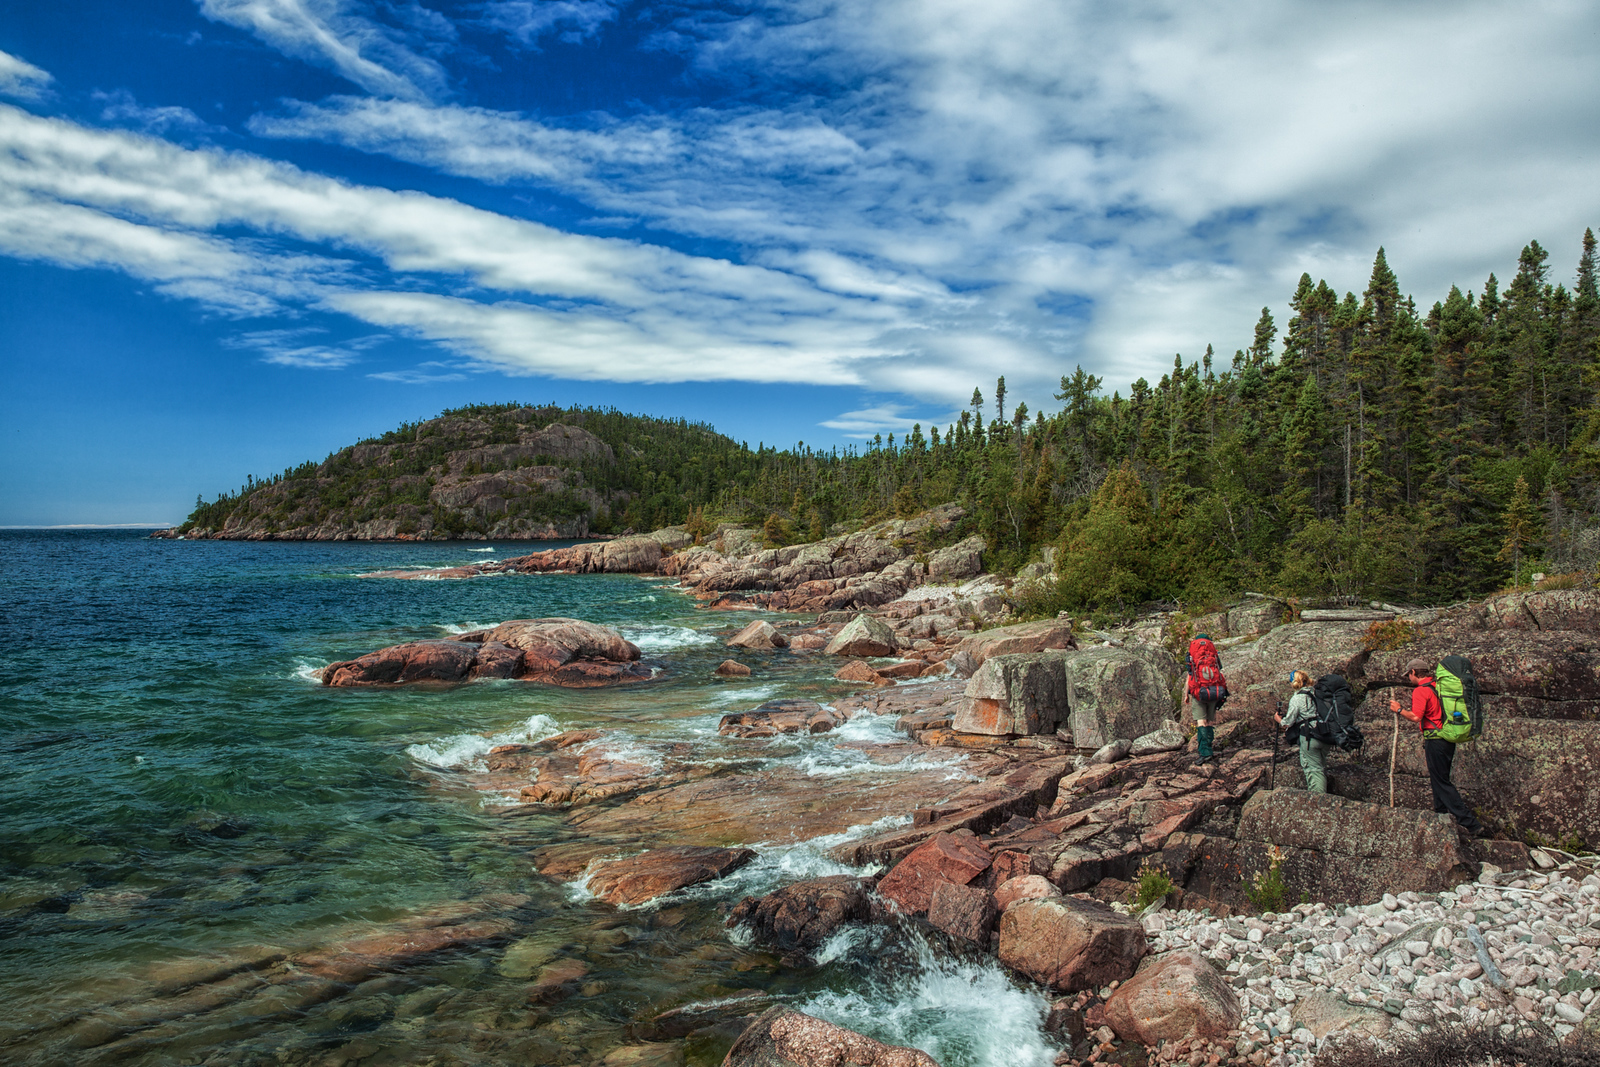 Hiking the Pukaskwa Coastal Trail in Ontario.